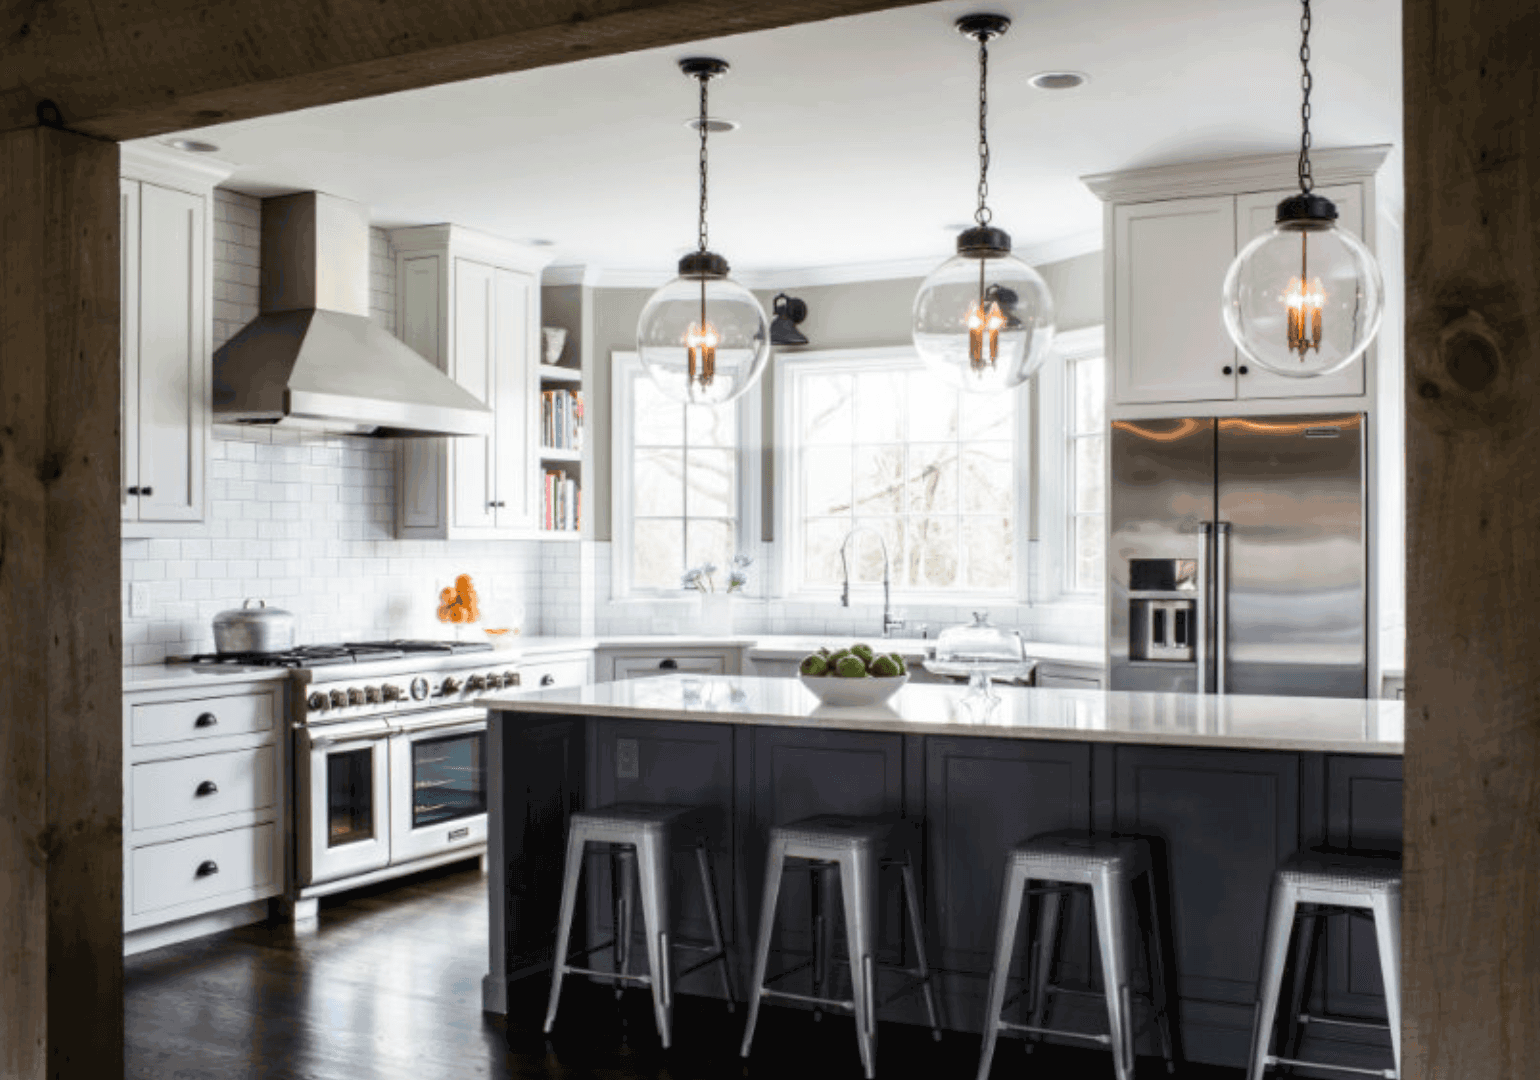 The 4 Layers of Luxury Kitchen Lighting - Revuu